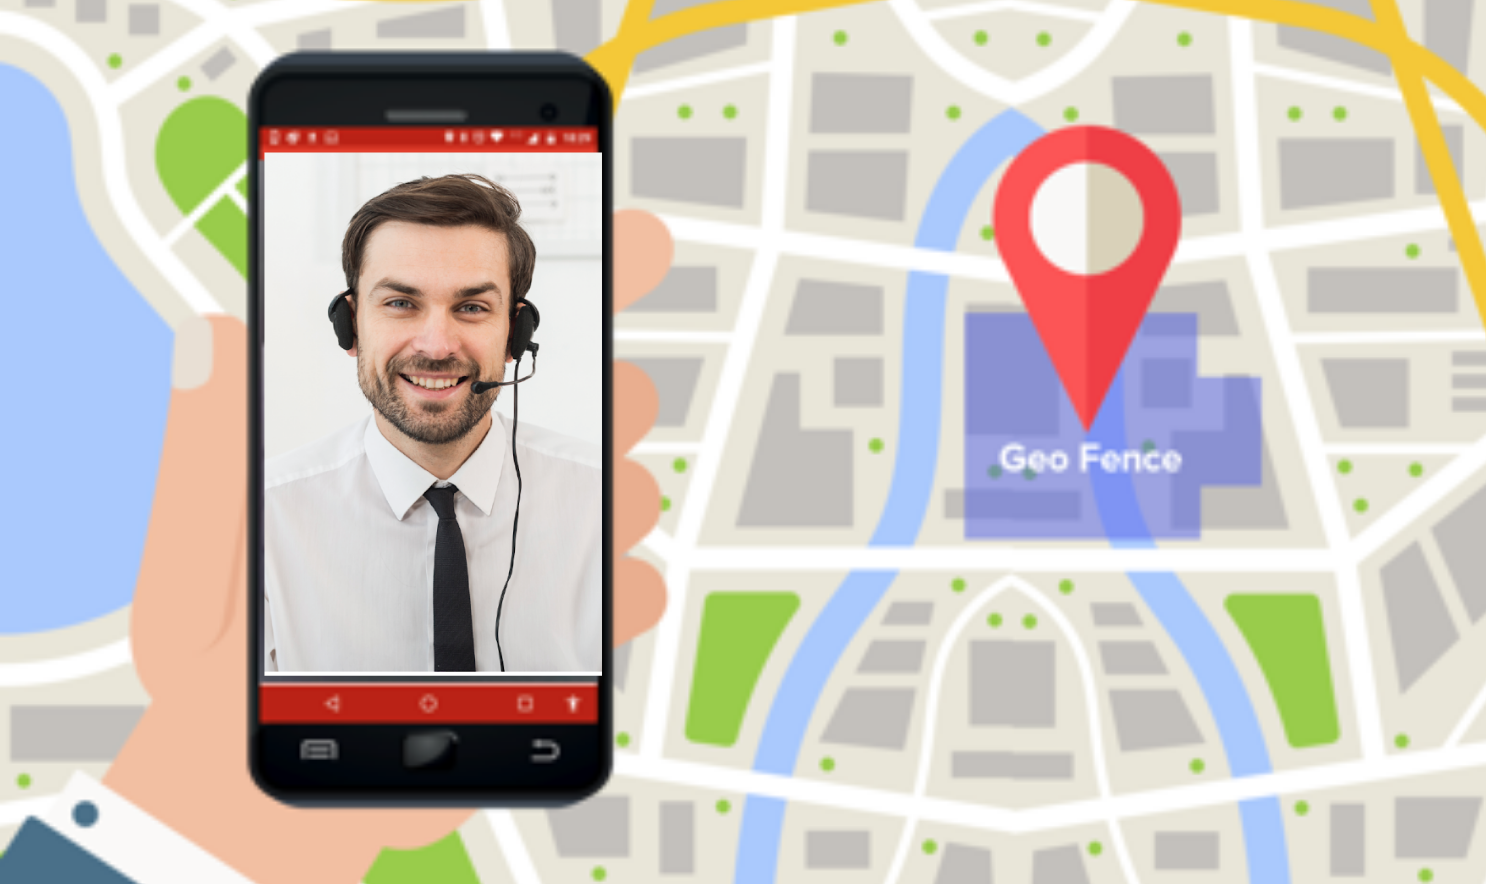 A graphic showing a virtual assistant through the Lazarillo app, next to a map of a shopping center